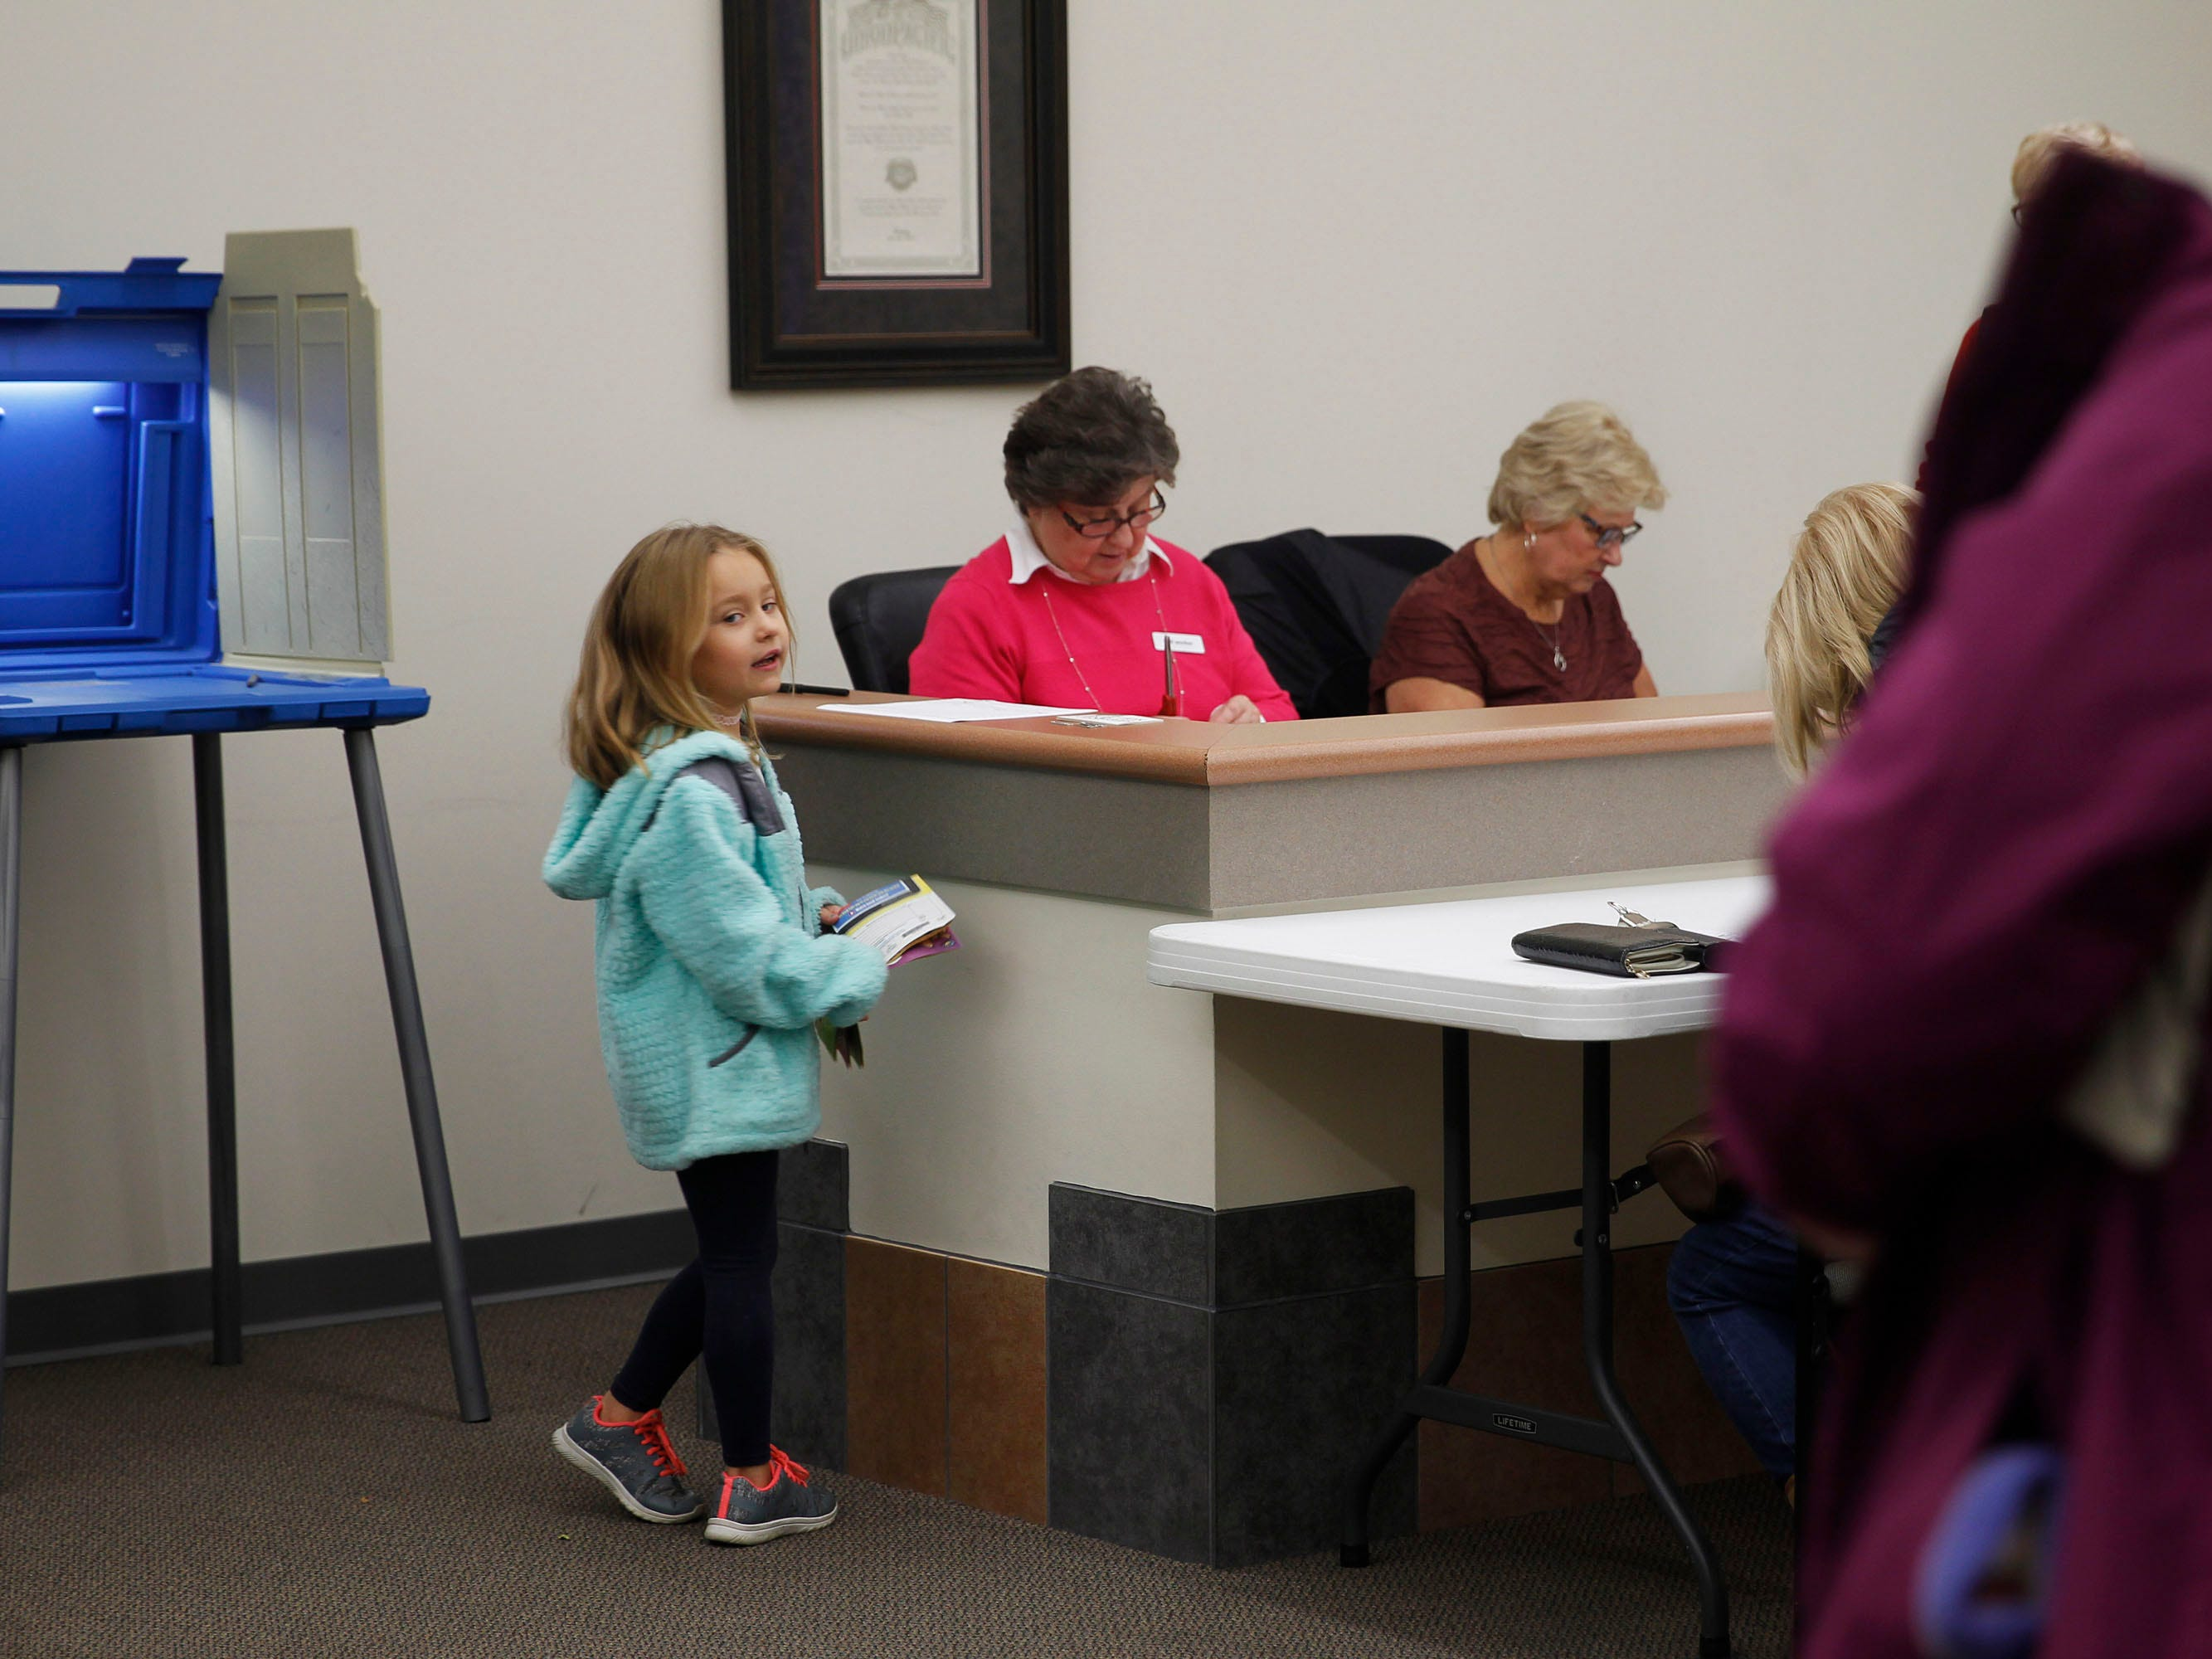 Audrey Ziegler, 6, is called by her mother, Jacquelyn, after saying hello to poll workers Kathy Eusslin (center) and Deputy Clerk Carolyn Jahnke at the village hall in Butler. Audrey was with her parents, who were among the early morning voters.